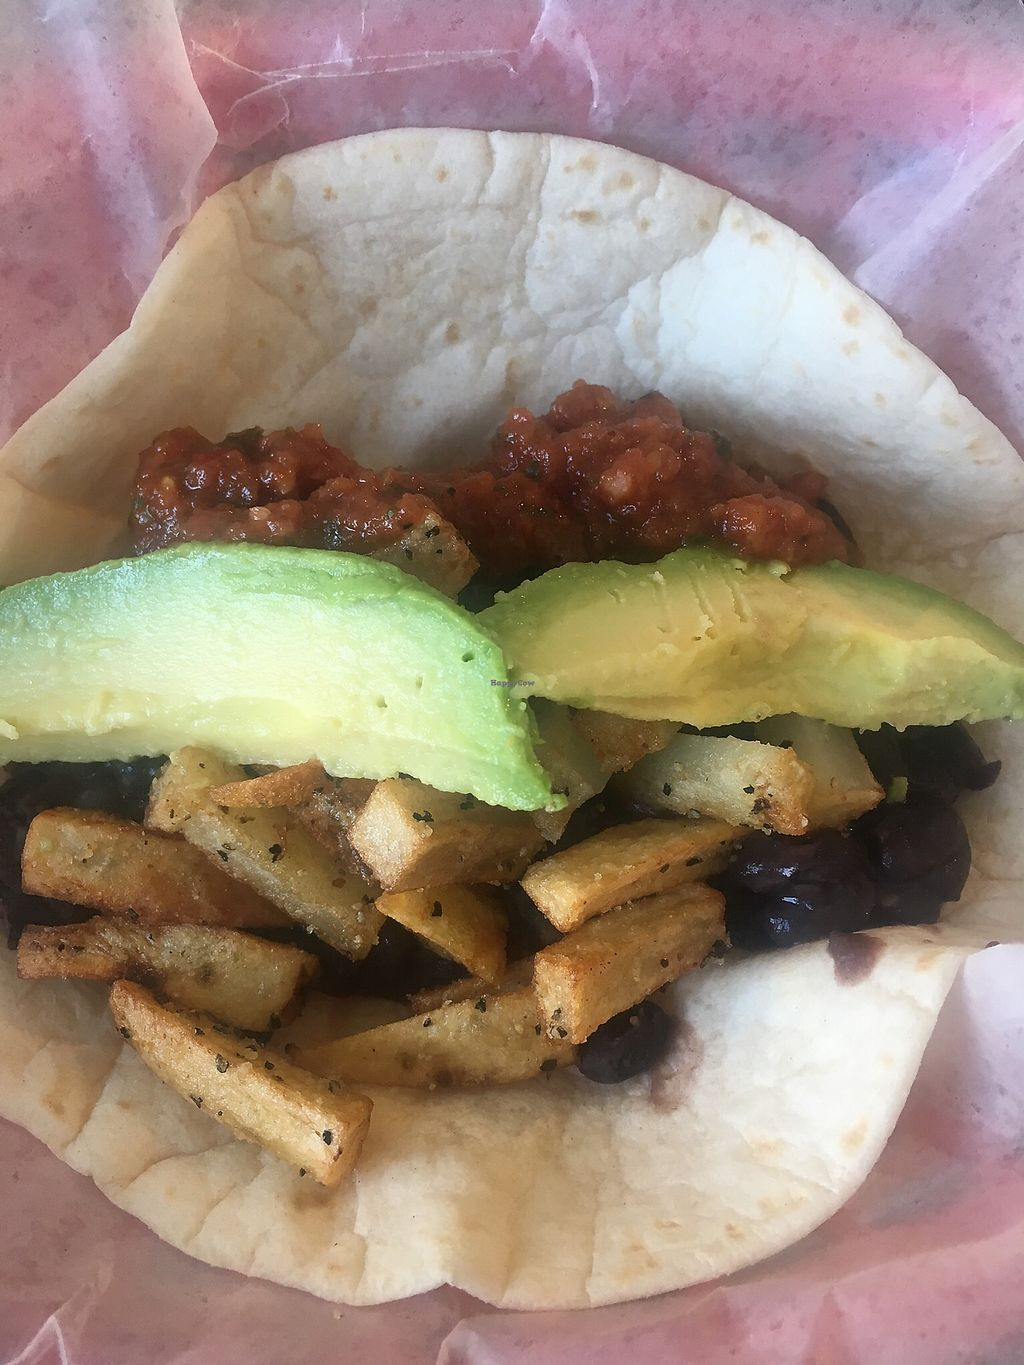 """Photo of Jo's Coffee House  by <a href=""""/members/profile/Traveling.Plant_Eater"""">Traveling.Plant_Eater</a> <br/>Build Your Own Breakfast Tacos! Beans, Potatoes and Avocado.  <br/> December 2, 2017  - <a href='/contact/abuse/image/93130/331548'>Report</a>"""